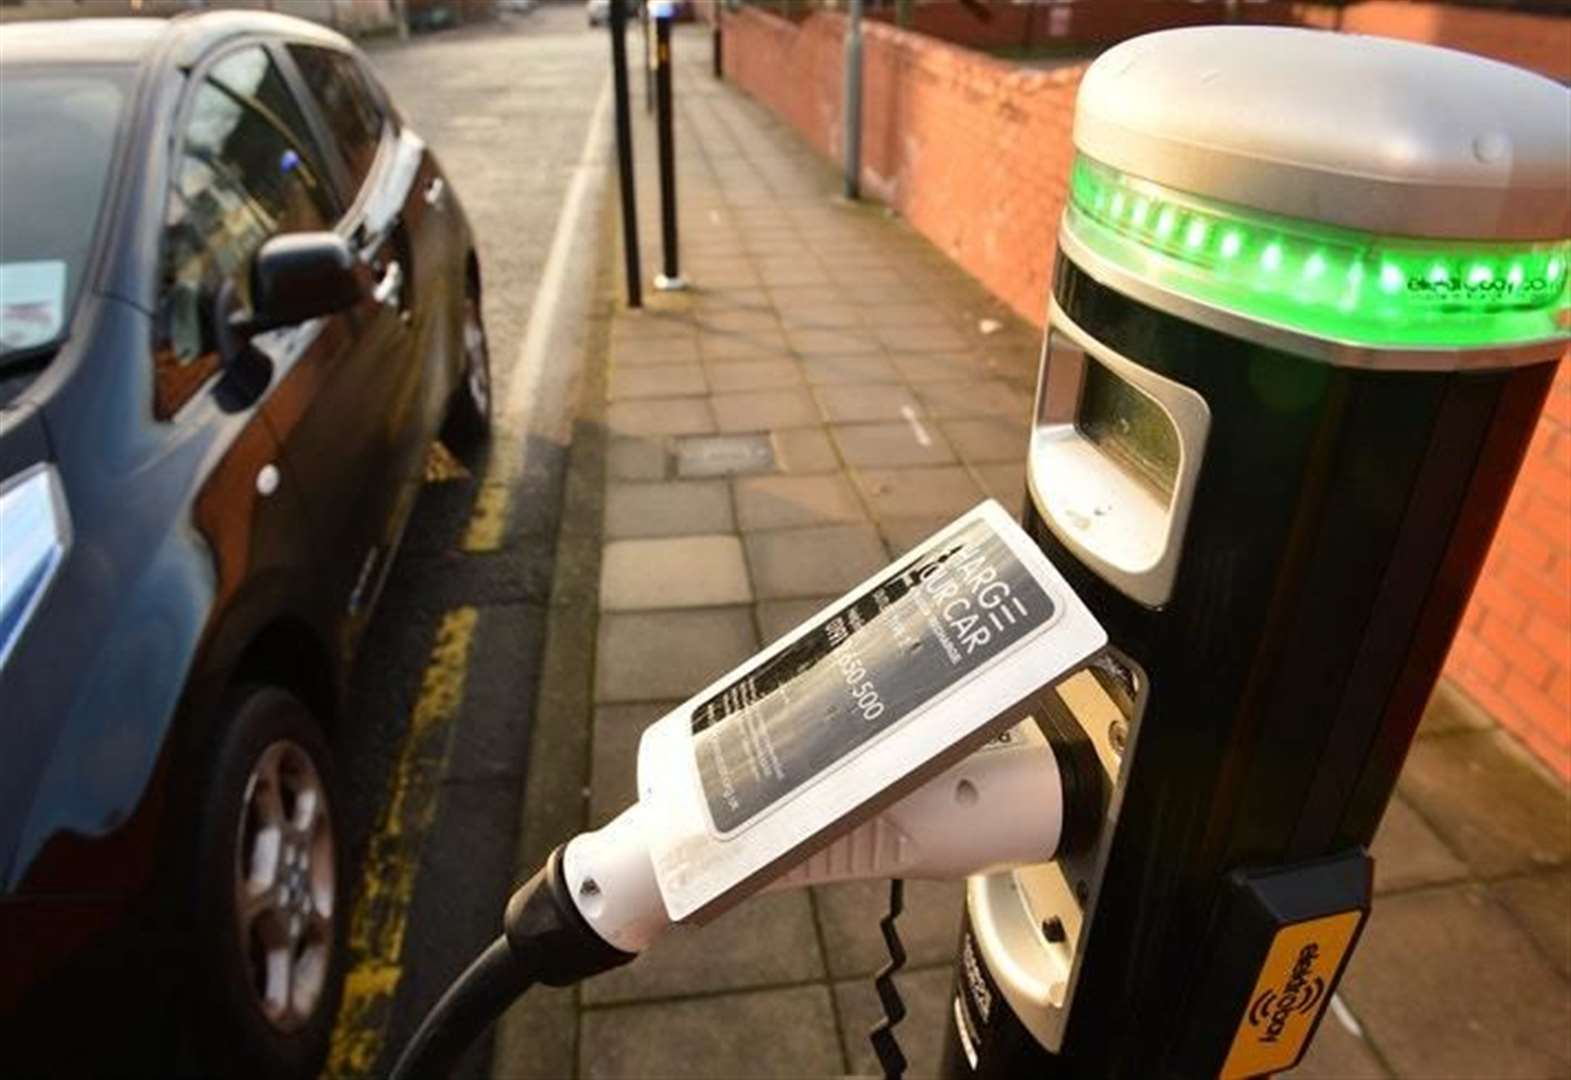 Fenland stalling on electric car infrastructure according to government figures